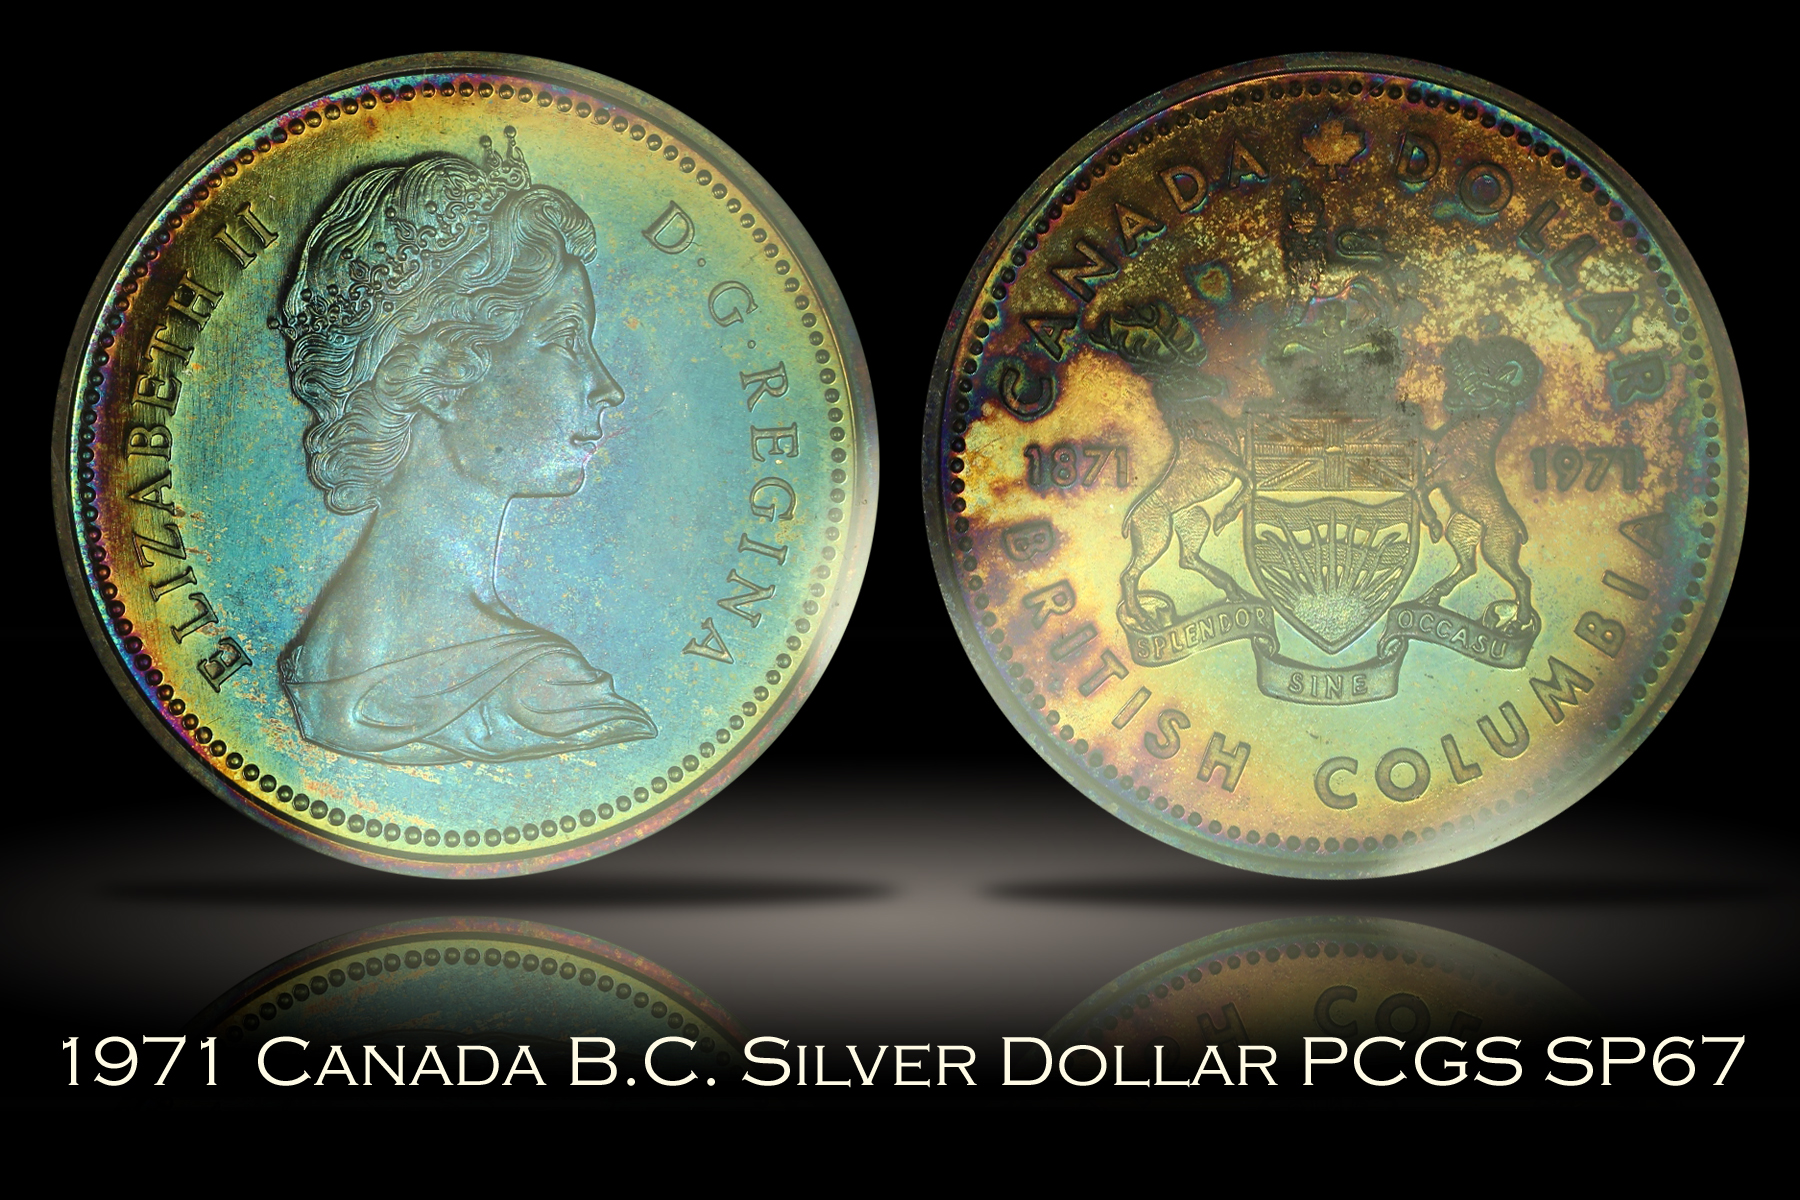 1971 Canada British Columbia Silver Dollar PCGS SP67